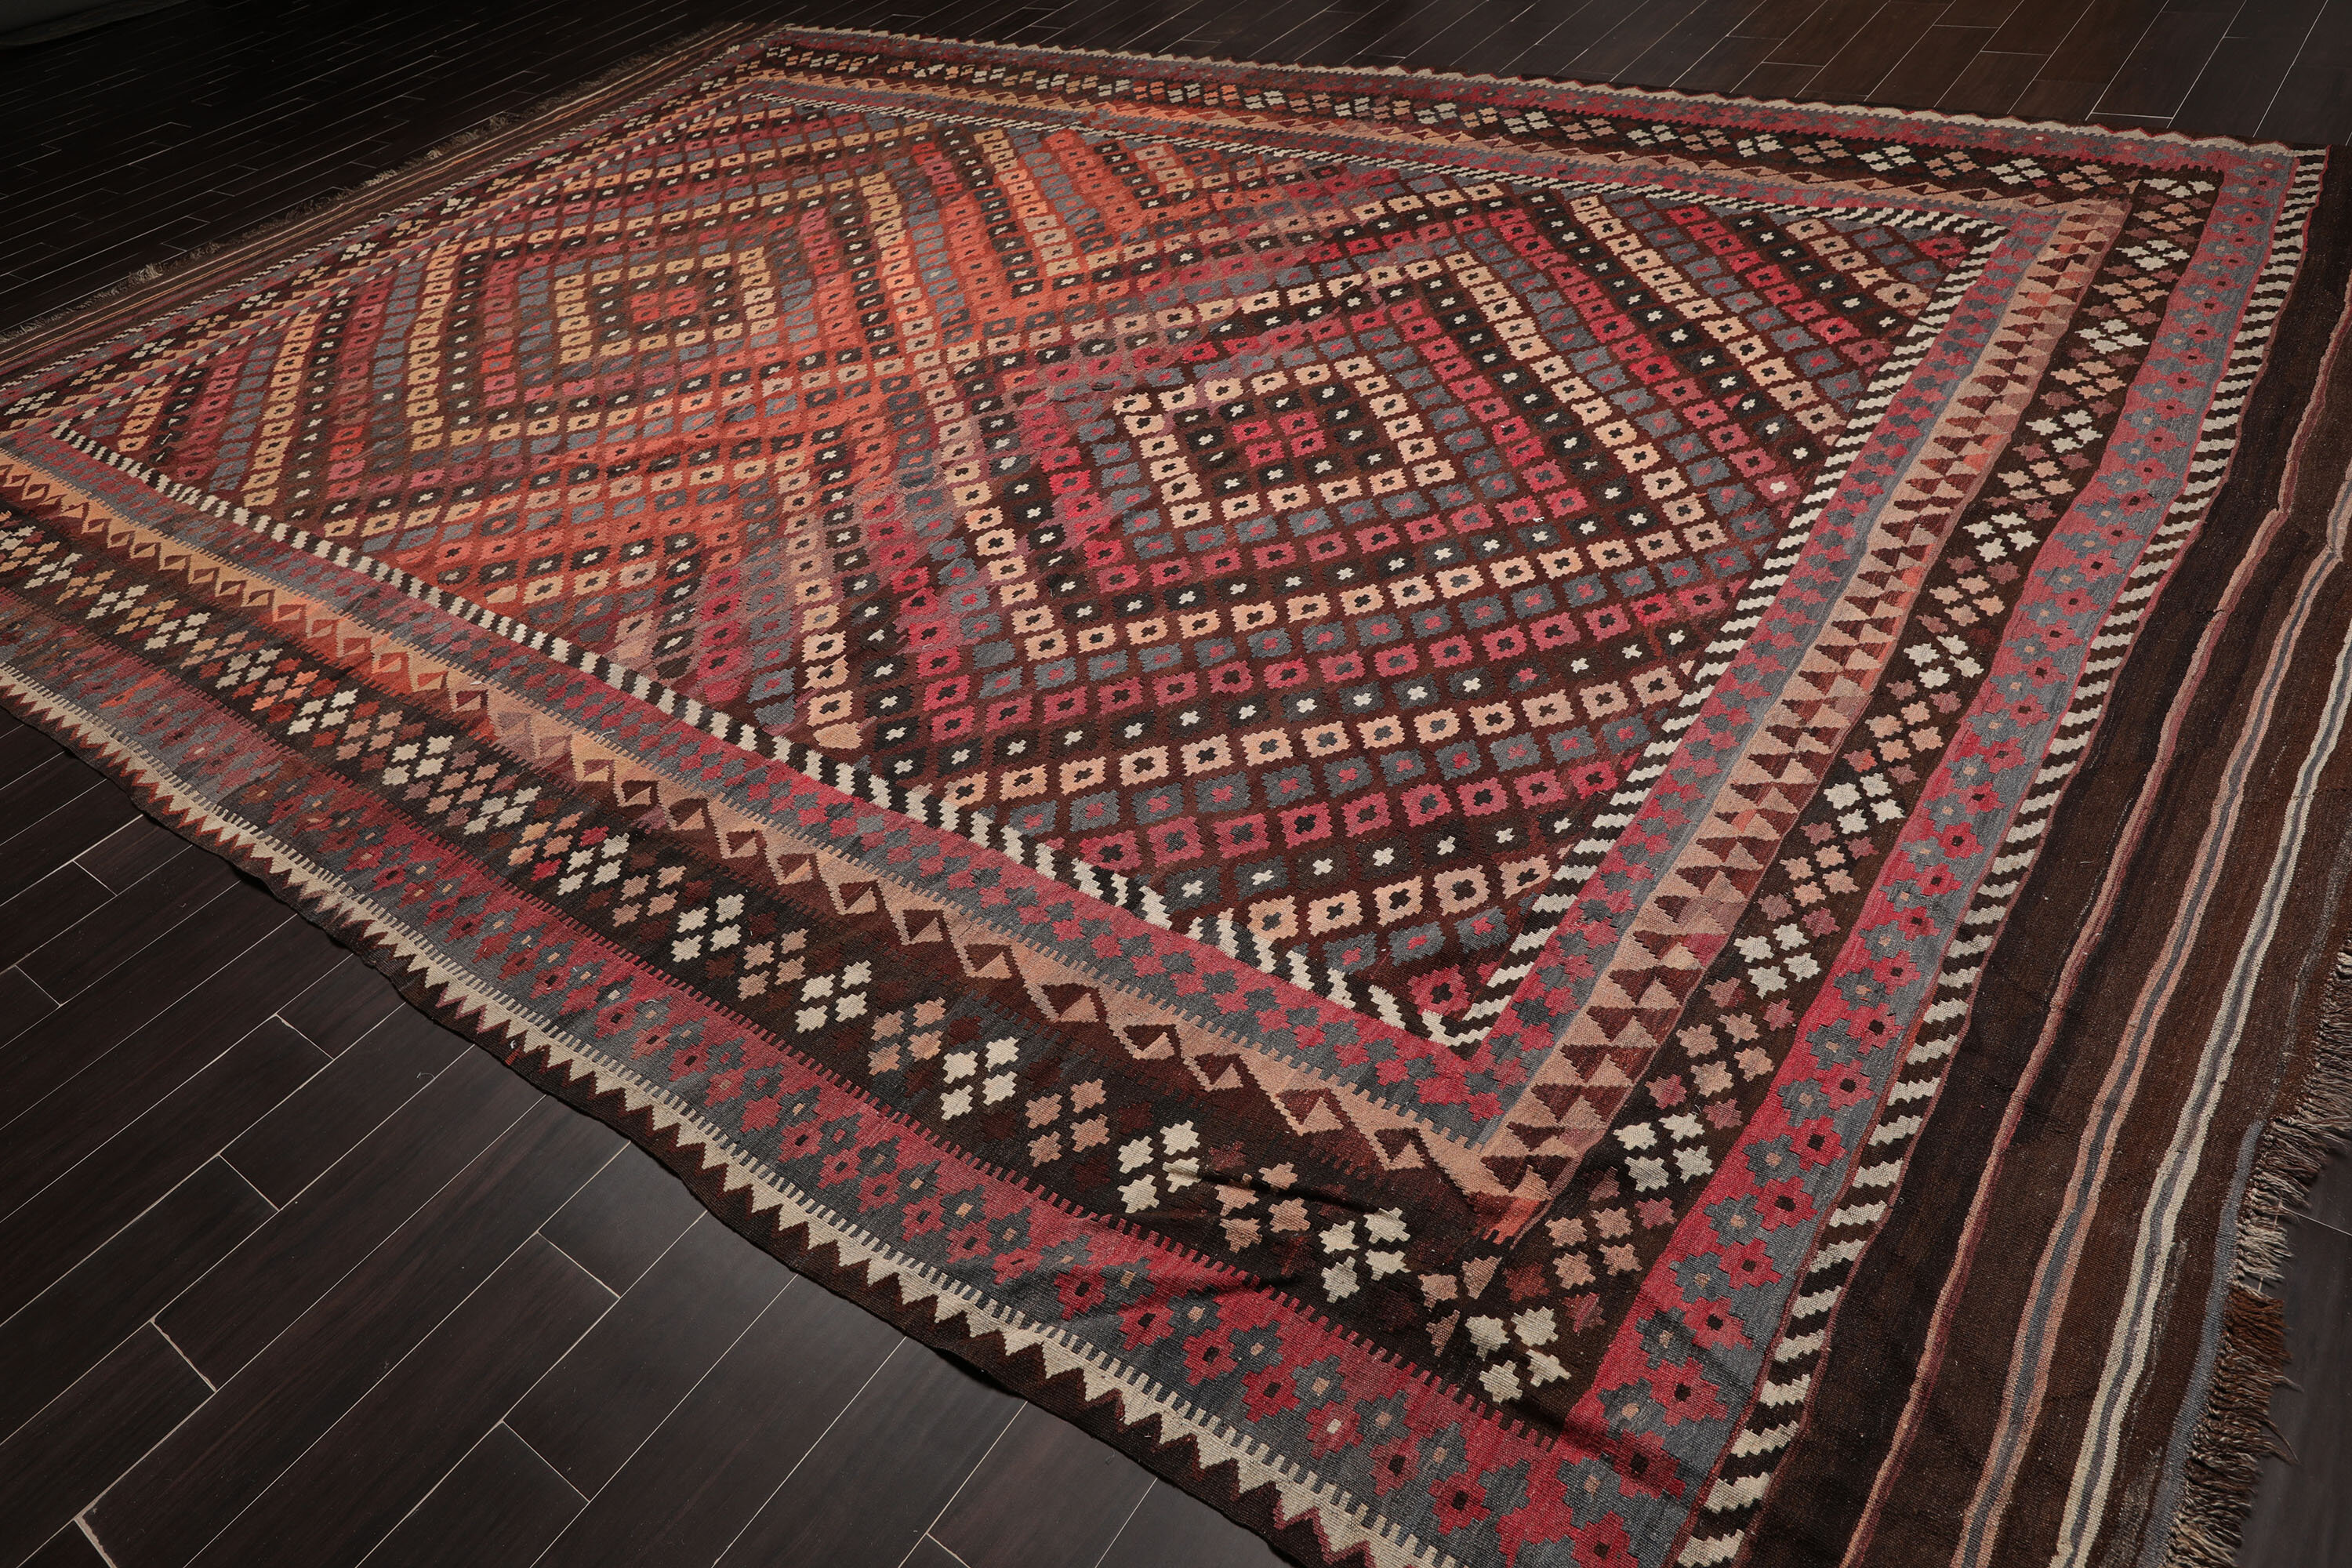 Oriental Rug Of Houston Palace Size Hand Woven Turkish Antique Afghan Kilim Ready To Use Ptofessionally Cleaned Handmade Flatweave Wool Rust Area Rug Wayfair